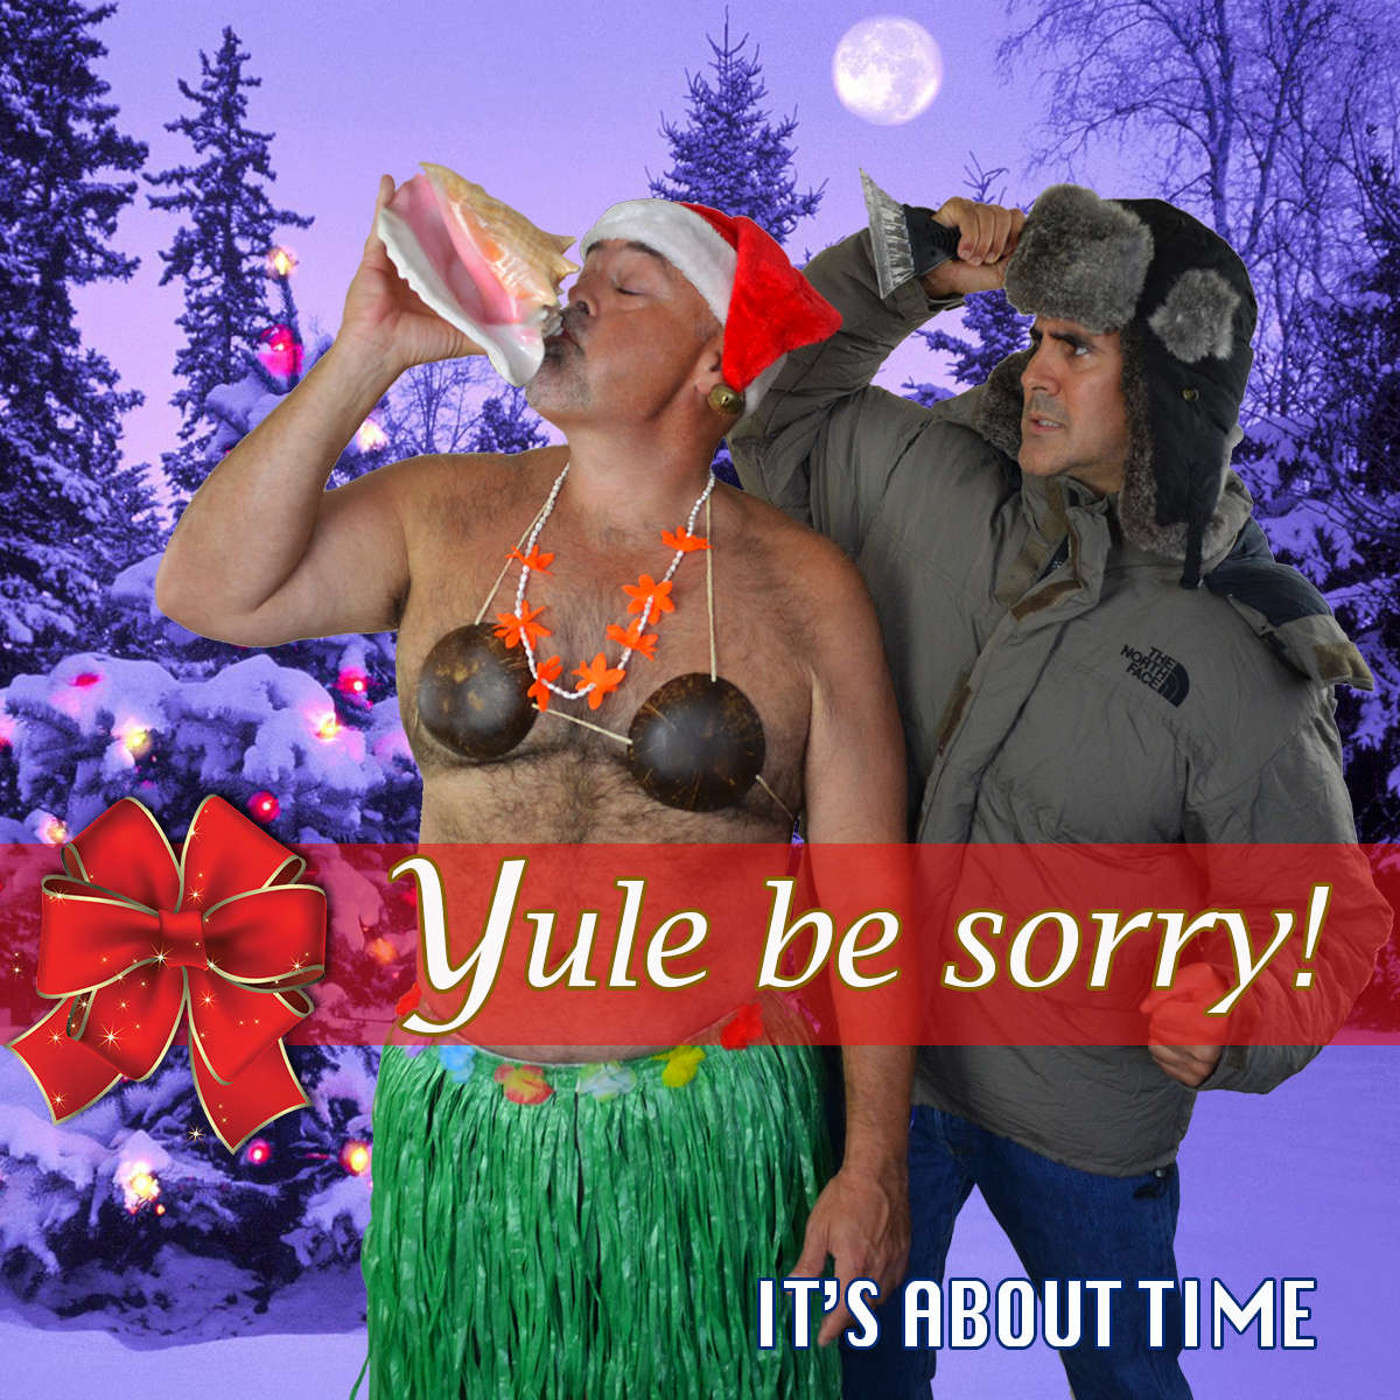 S01E07-Yule Be Sorry - Christmas vacation at the time travel agency